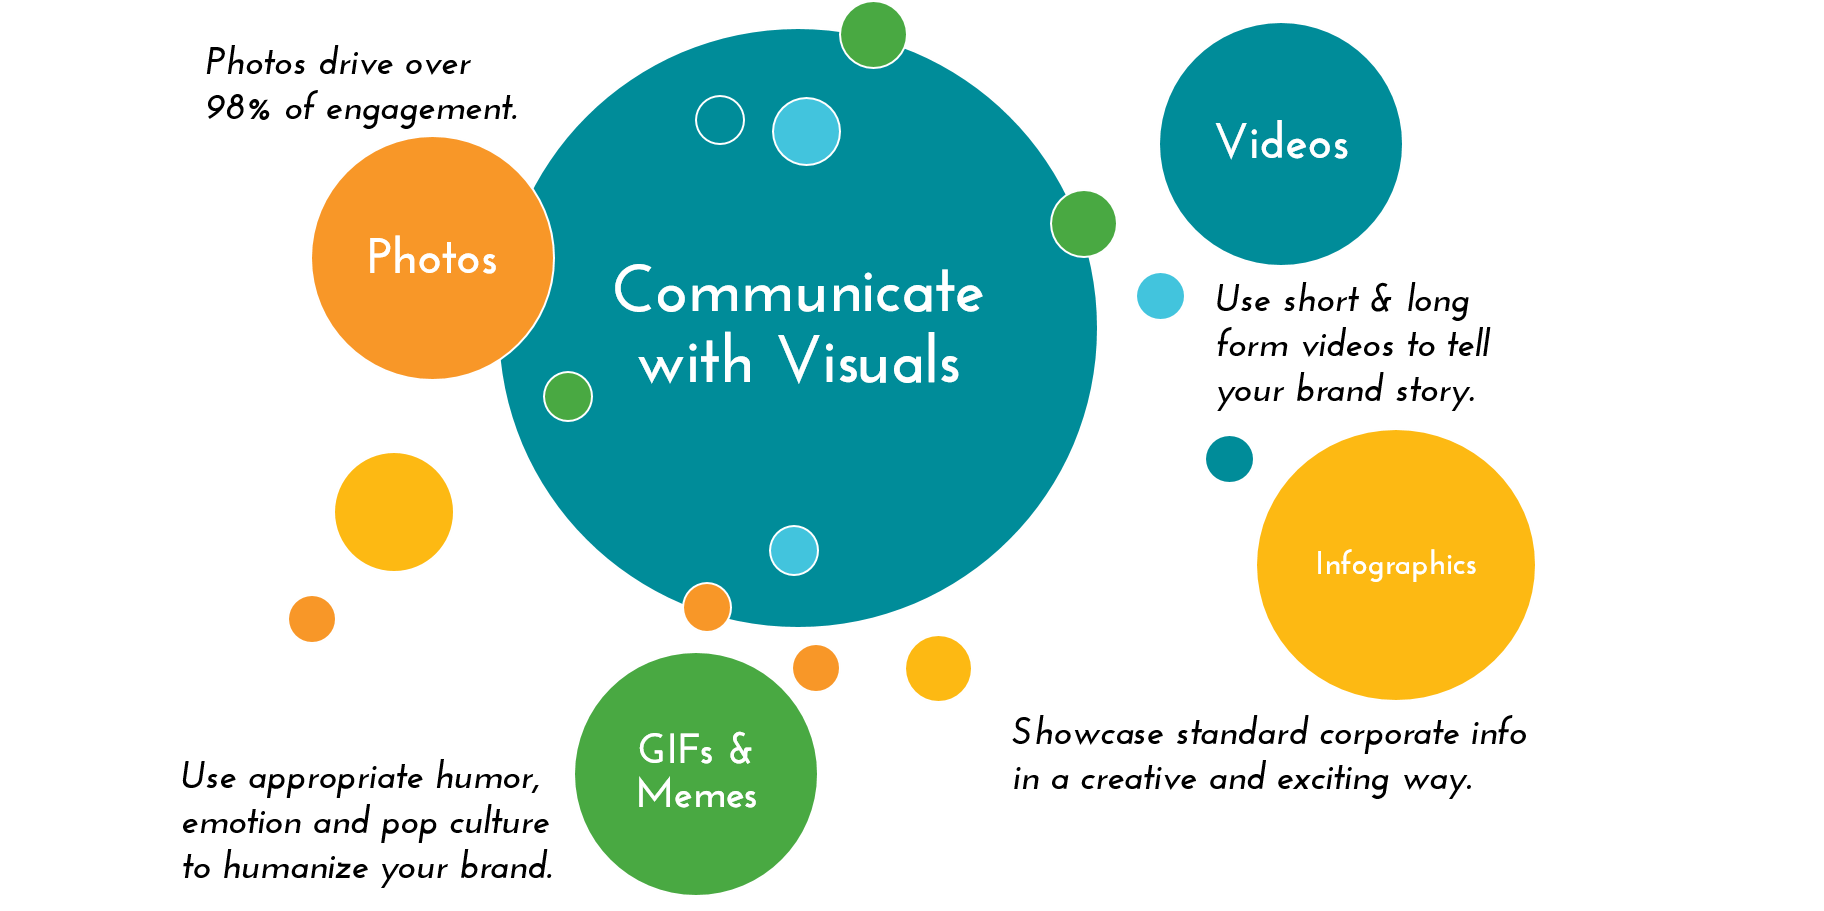 Communicate with Visuals